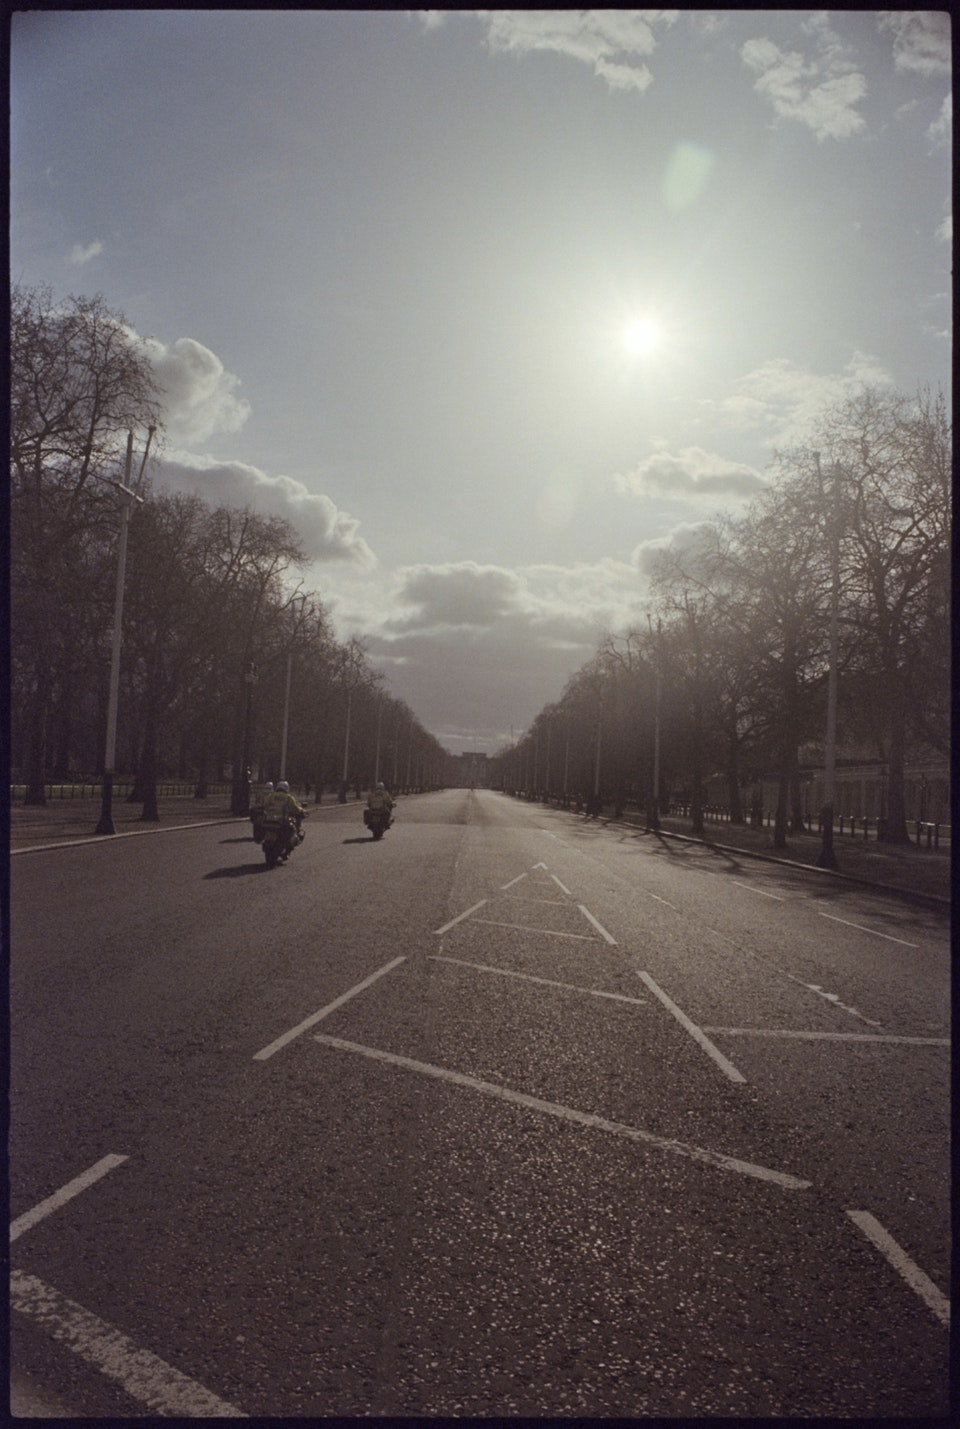 Cinematographer: Adrien Brauge: 'London W1, 4pm' - The Mall